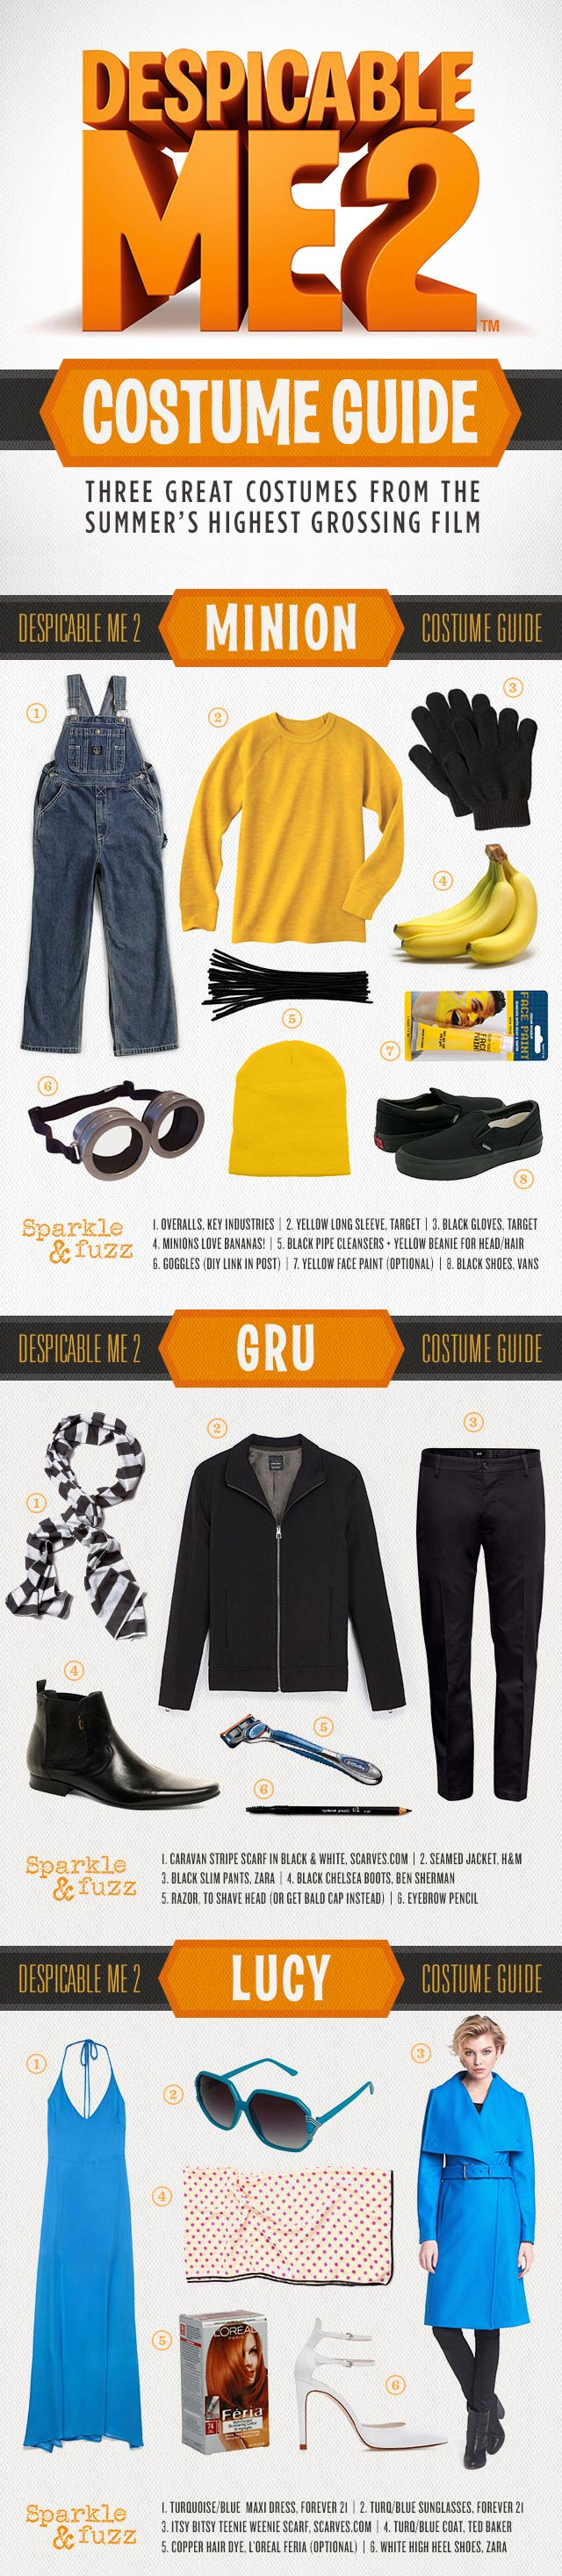 Despicable Me 2 Costume Guide Gru Lucy and the Minions & An awesome costume guide for the whole family Ladies look fly in ...